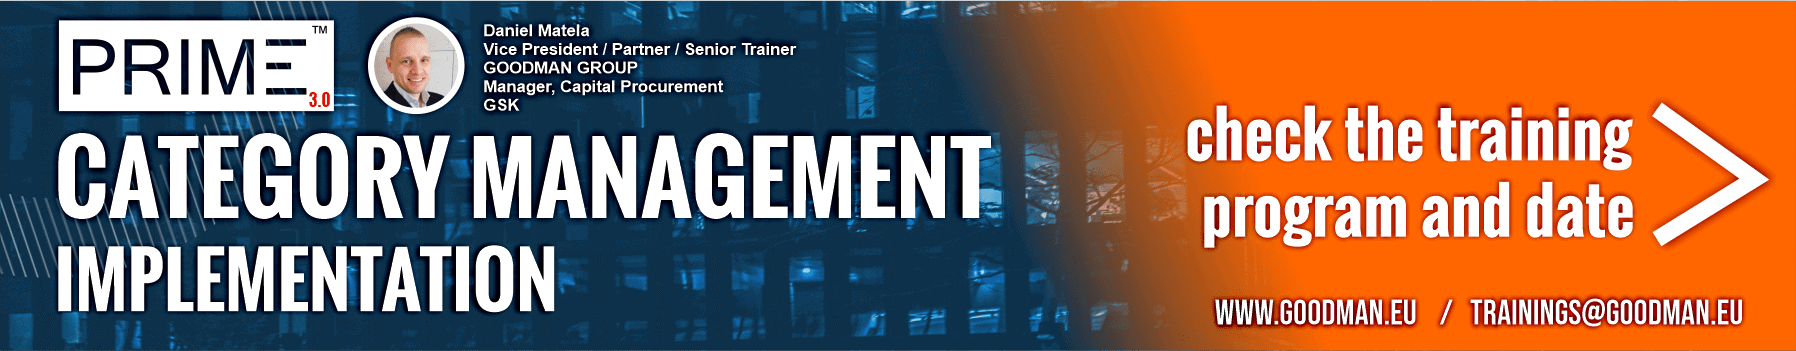 category management business courses webinar training implementation procurement